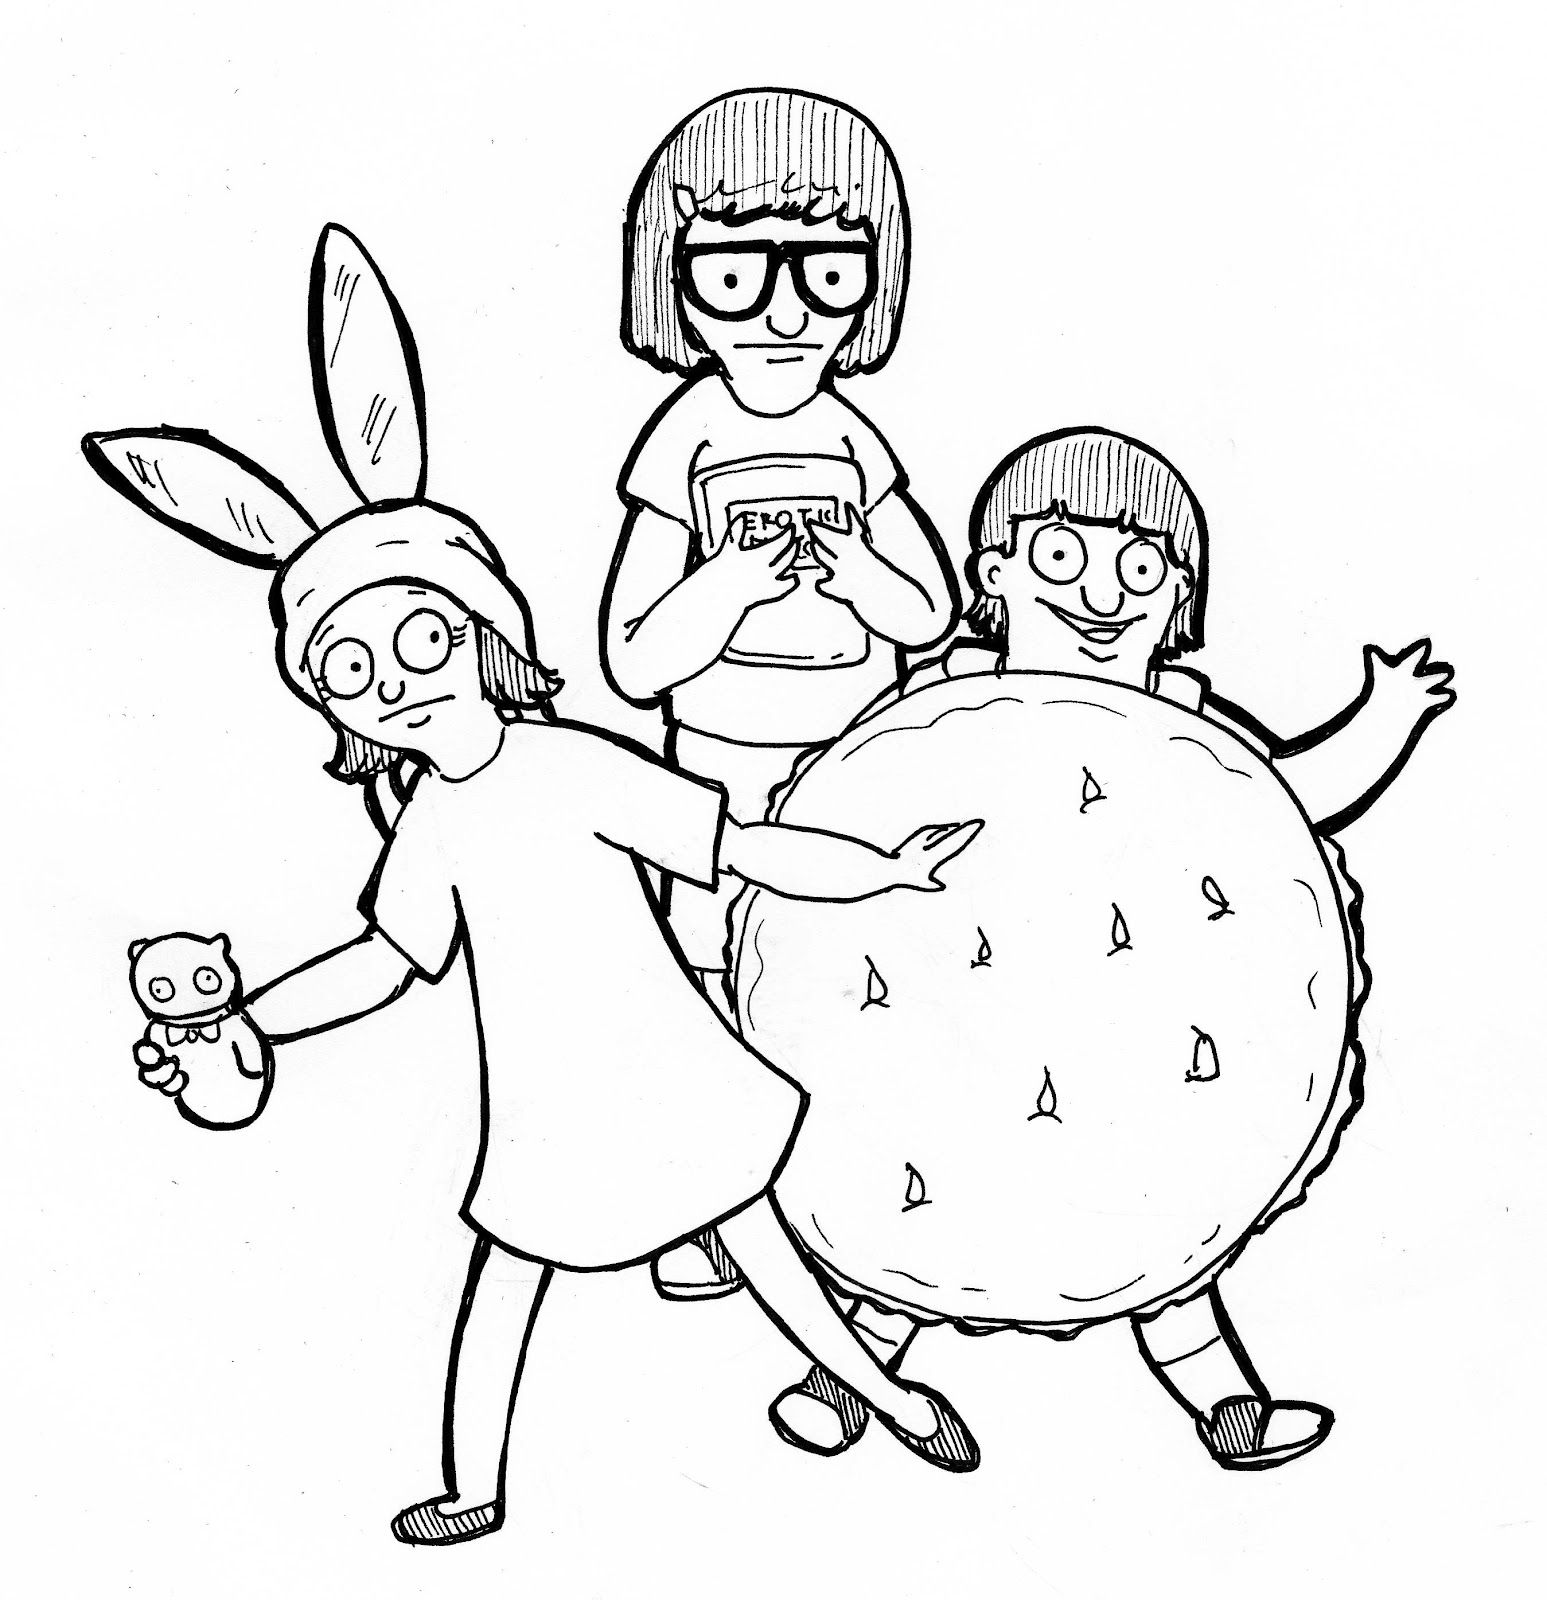 bobs burgers coloring pages - Google Search | coloring pages | Pinterest